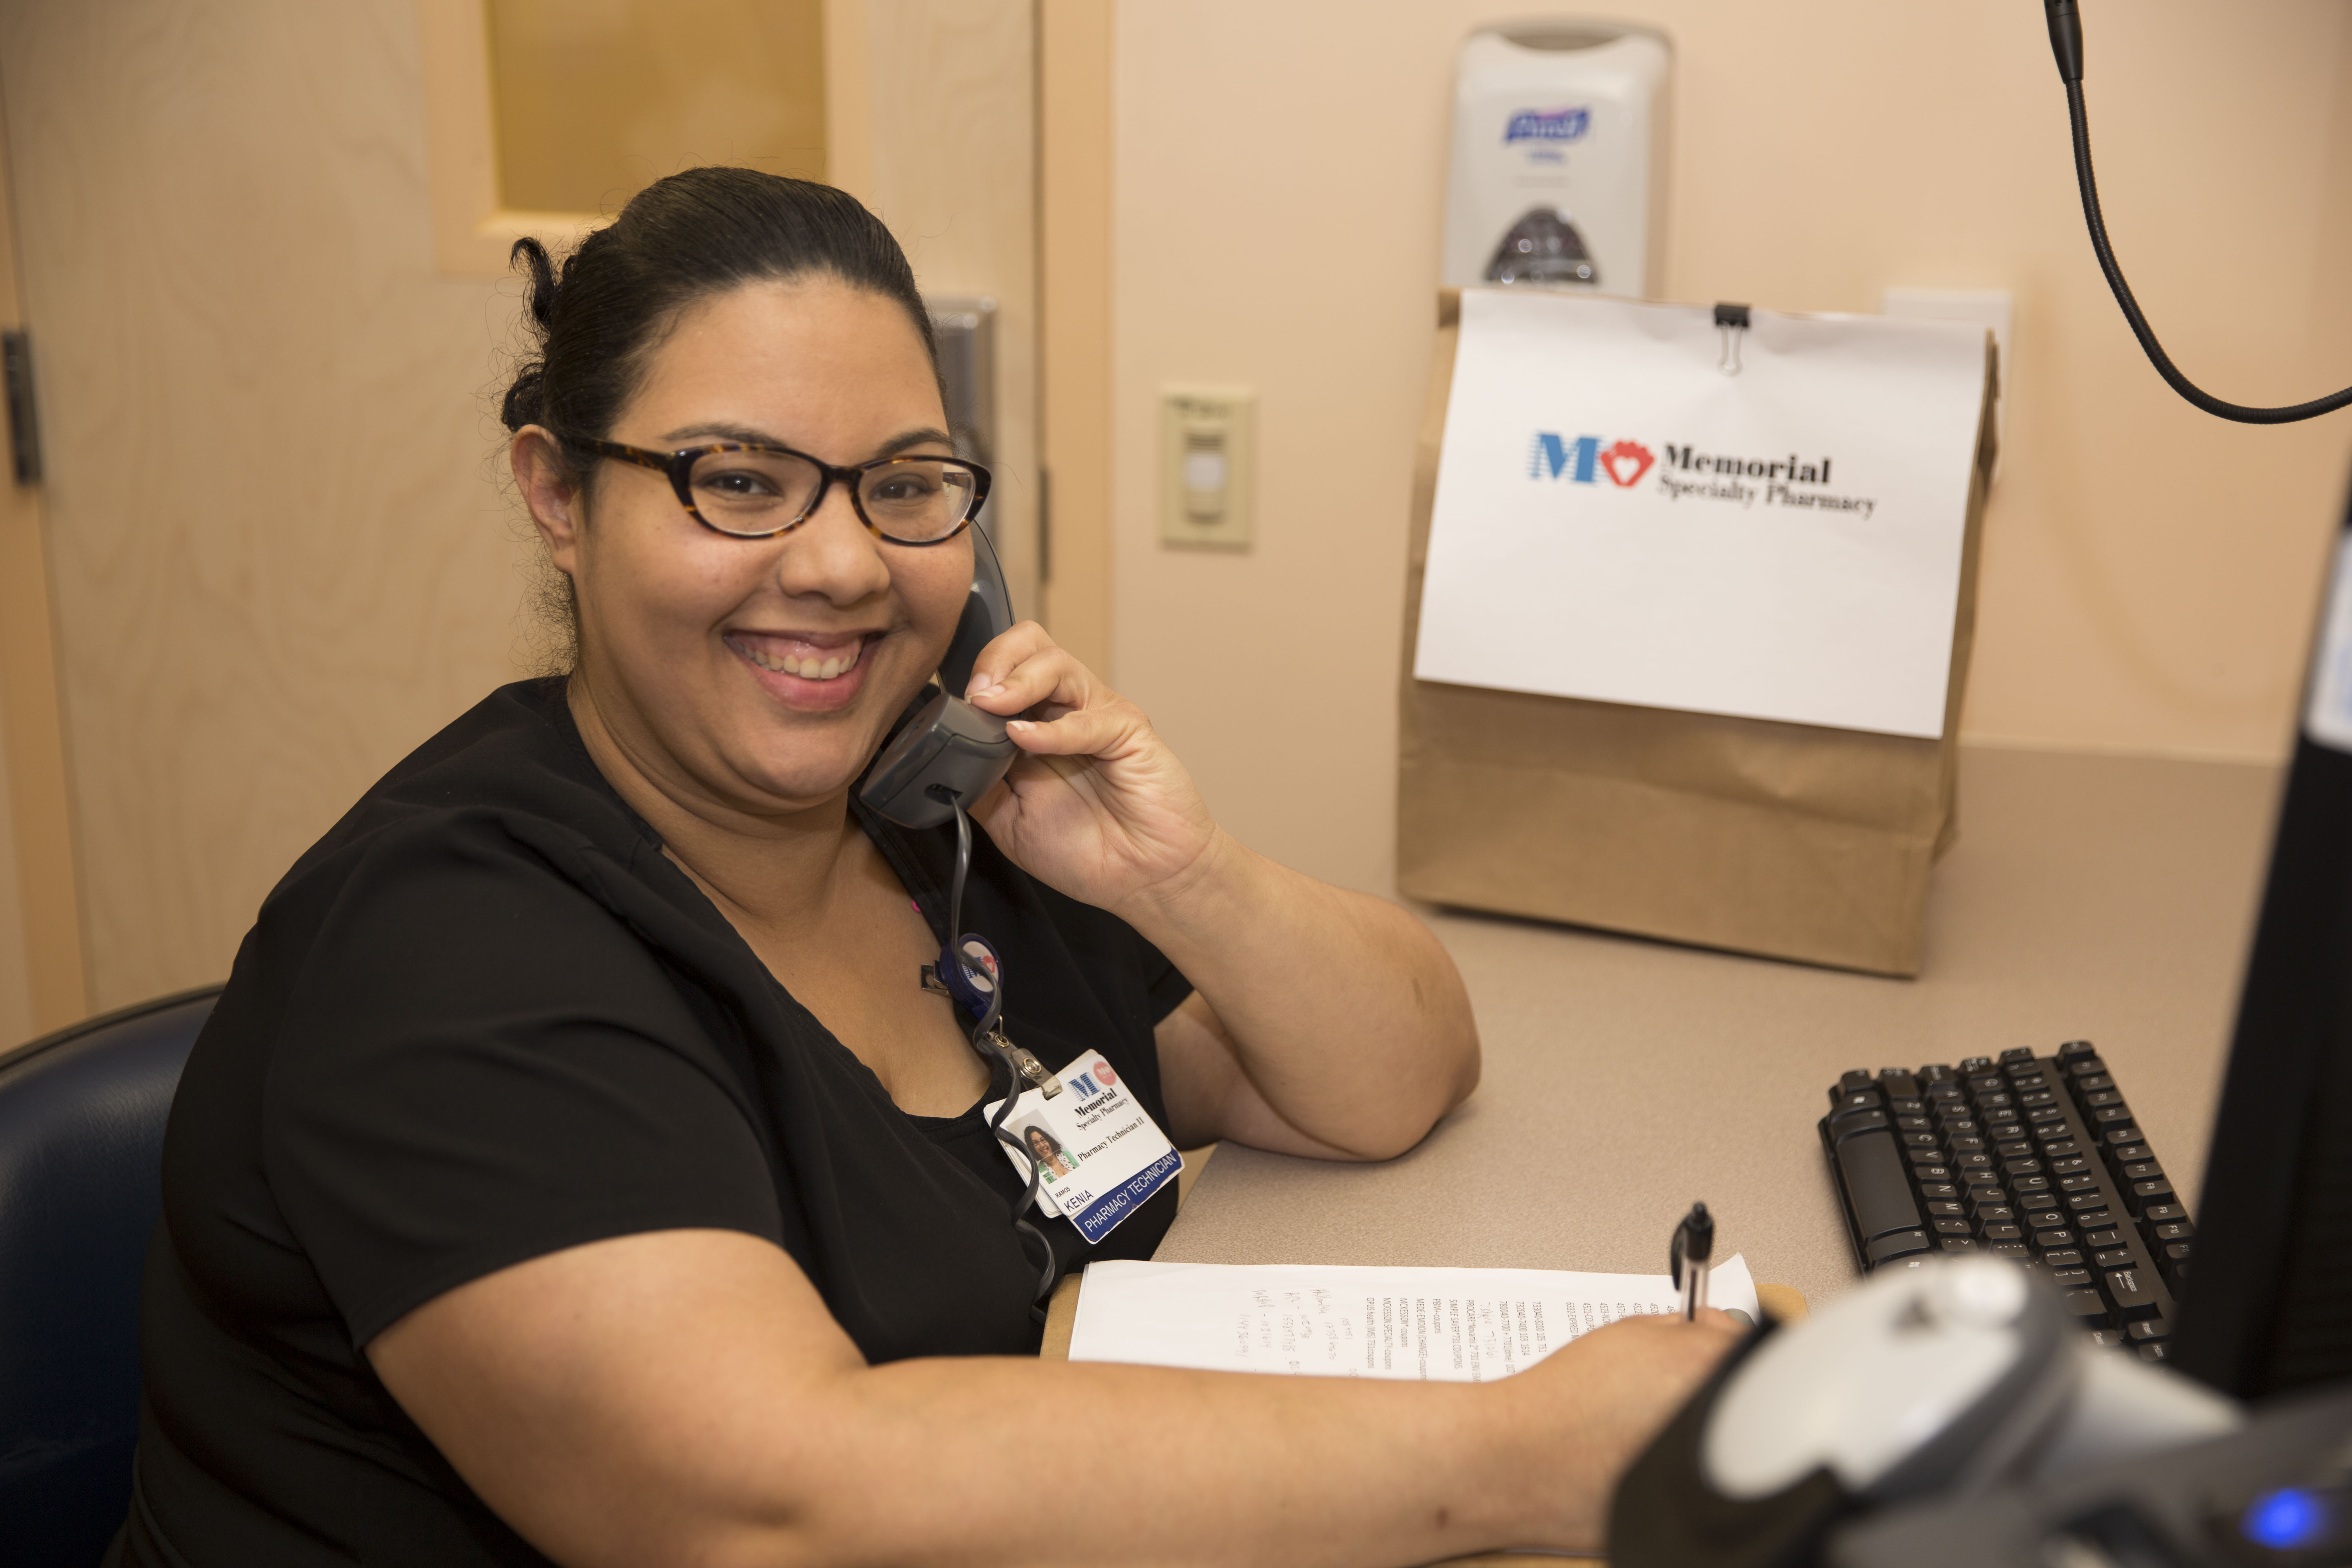 specialty pharmacy staff answering phone